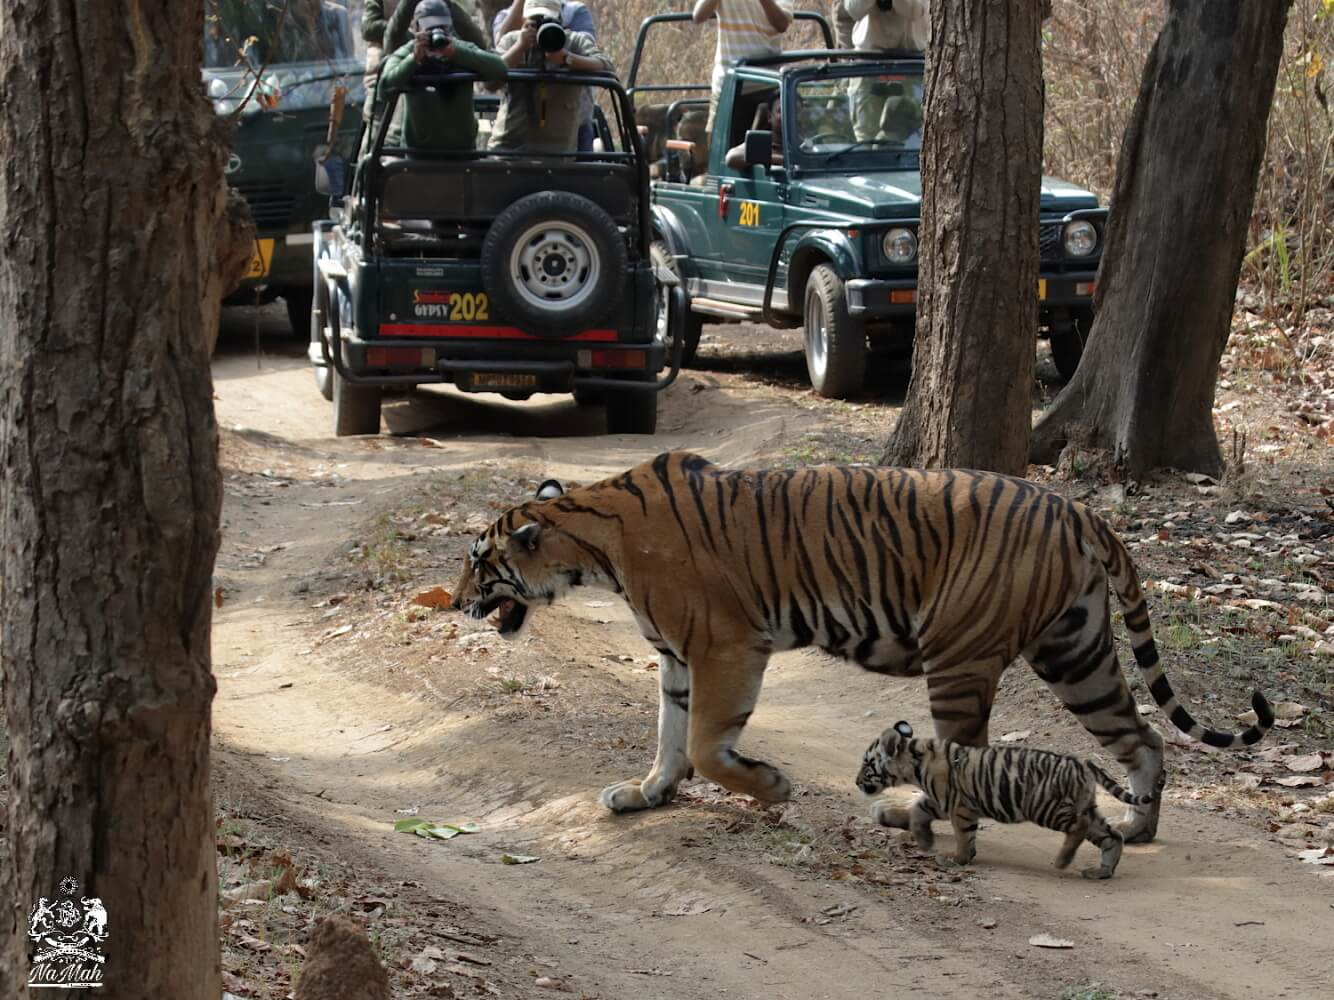 Tigeress Choti Mada walking on road with her cub in jungle of Kanha